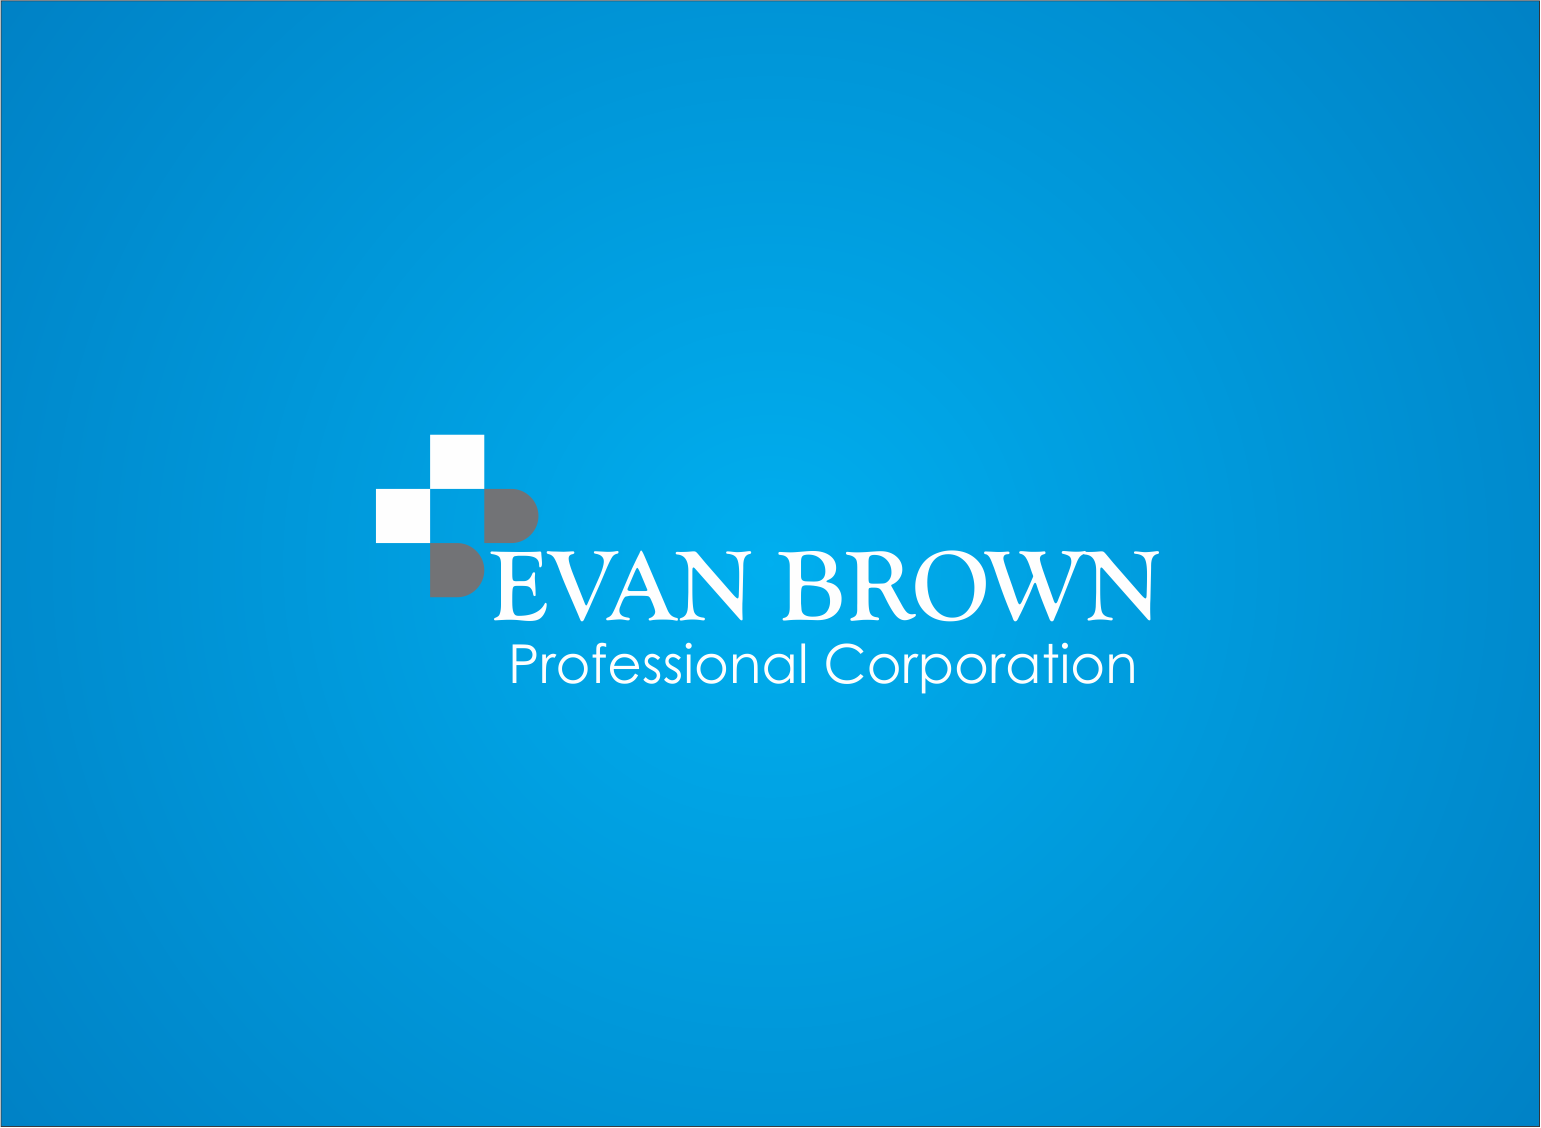 Logo Design by Armada Jamaluddin - Entry No. 30 in the Logo Design Contest Inspiring Logo Design for Evan Brown Professional Corporation.